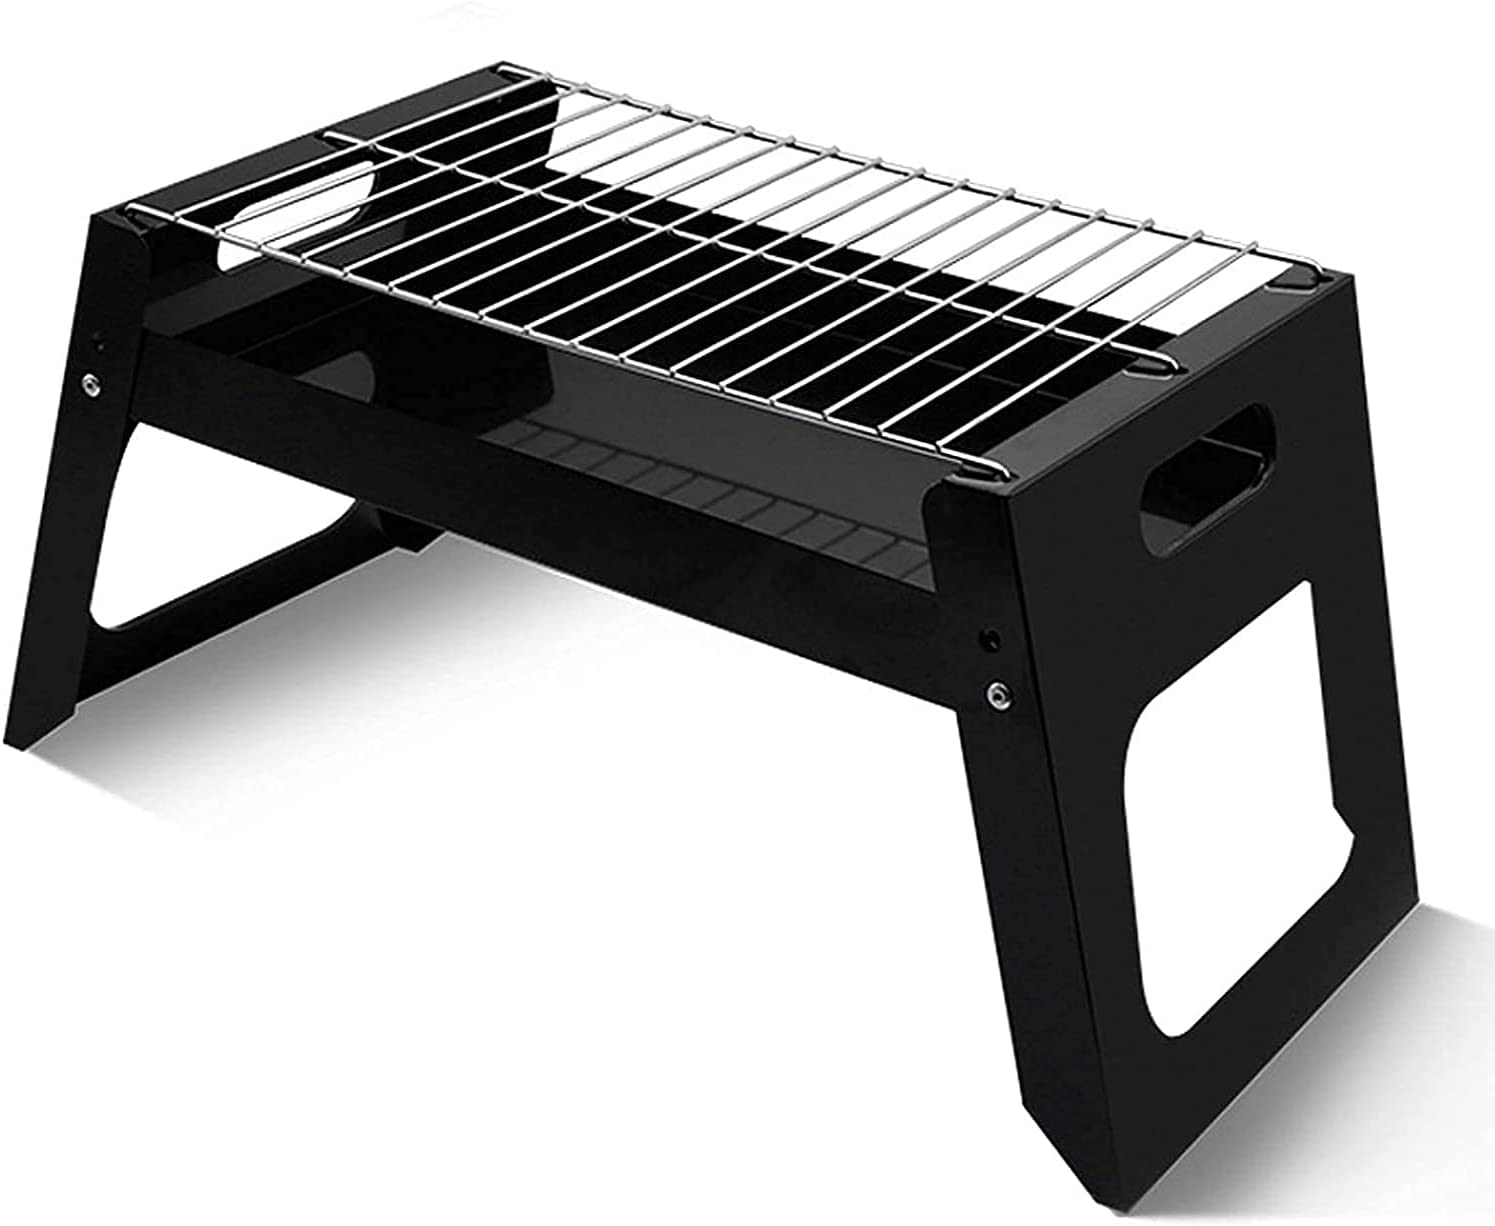 AACXRCR Rare Barbecue tool set Grill Charcoal New product! New type Foldable Camp